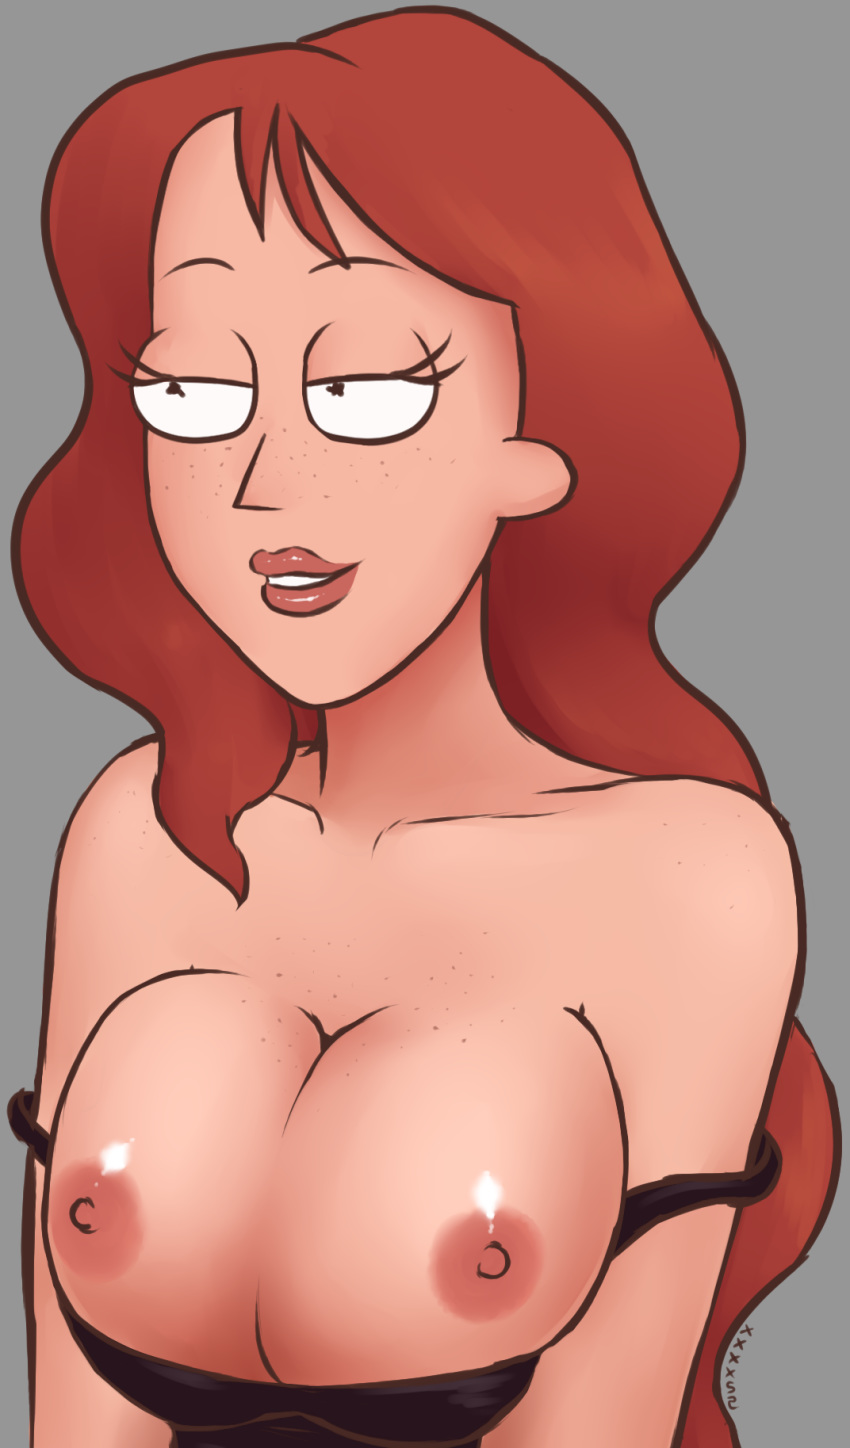 morty rick and incest porn Shadow the hedgehog body pillow